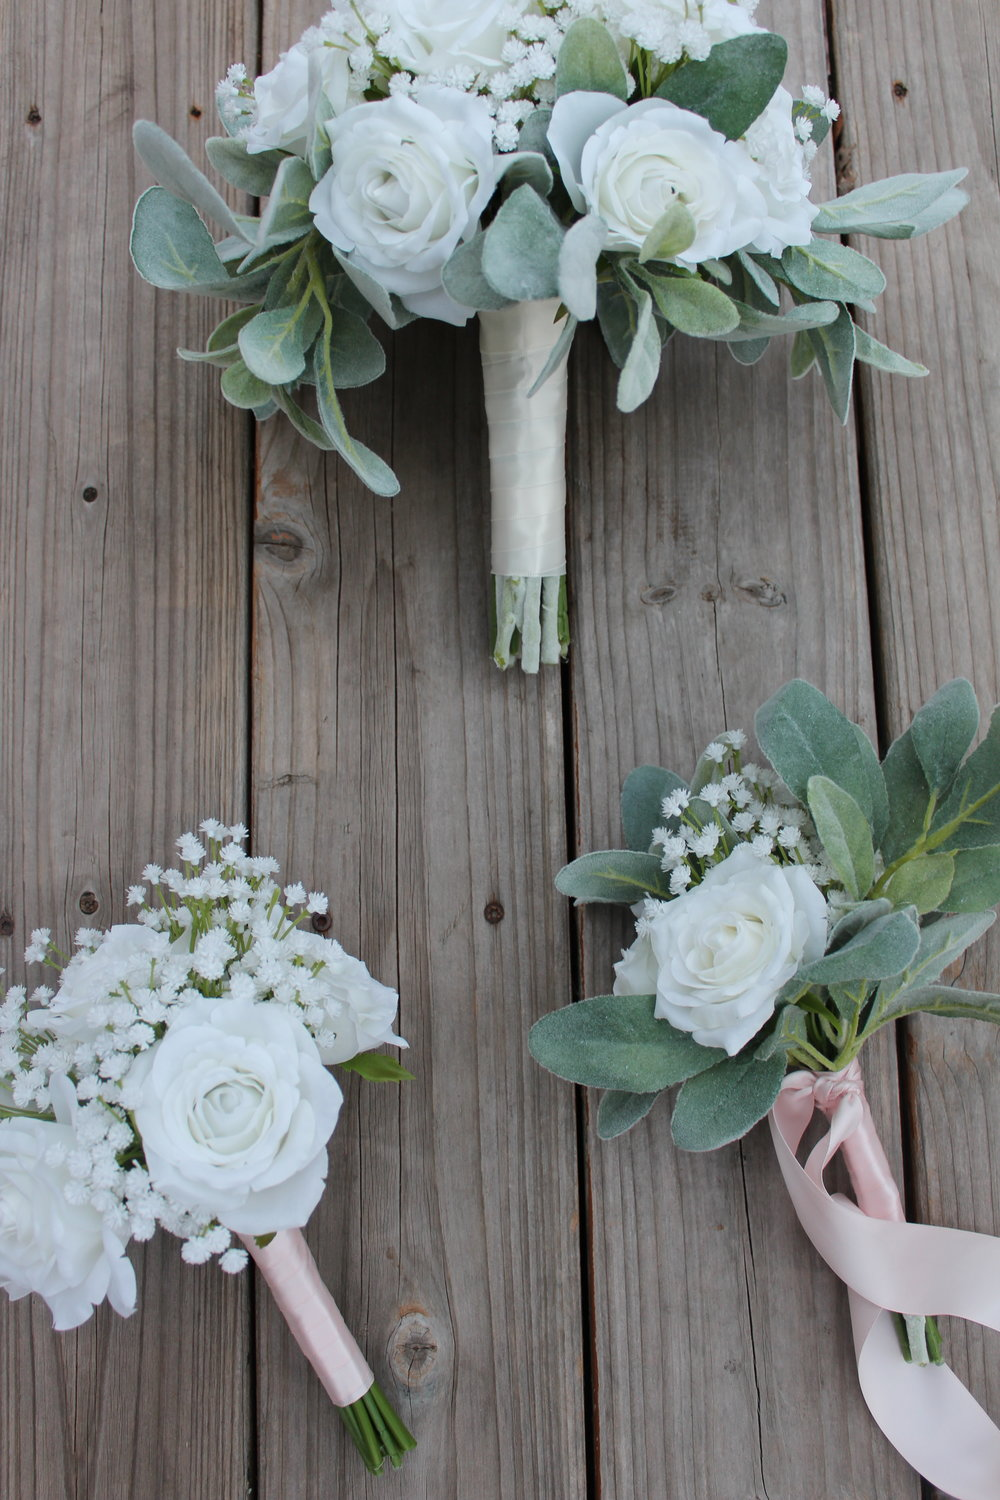 Silk wedding flowers in white silk wedding flowers and bouquets bridesmaid and toss bouquets tied off with blush pink ribbon mightylinksfo